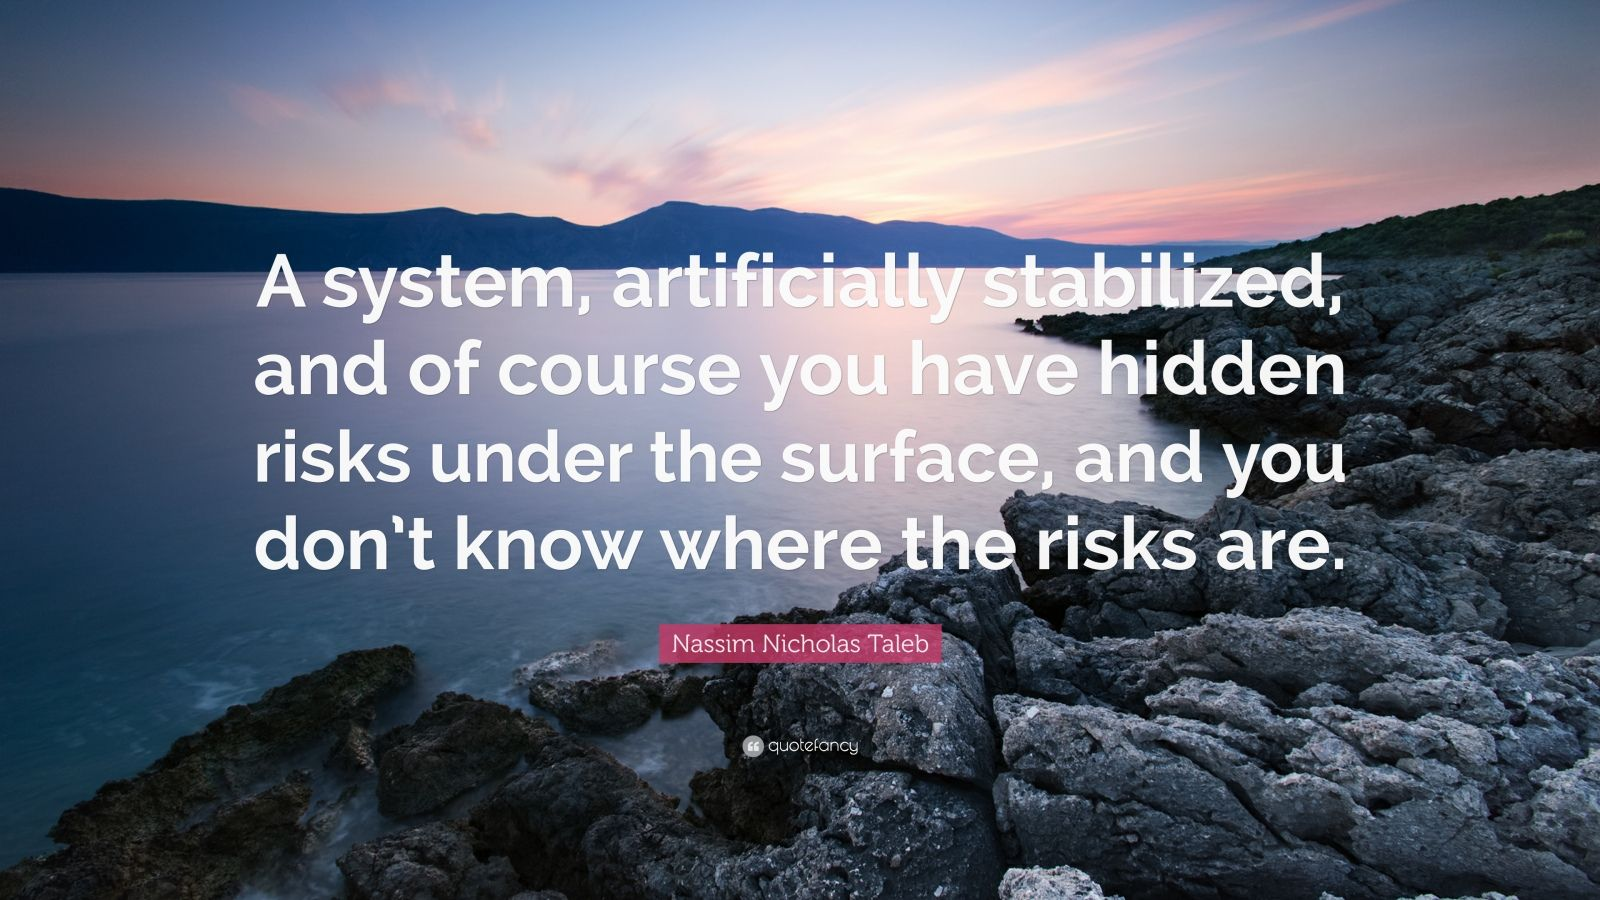 """Nassim Nicholas Taleb Quote: """"A system, artificially stabilized, and of course you have hidden risks under the surface, and you don't know where the risks are."""""""